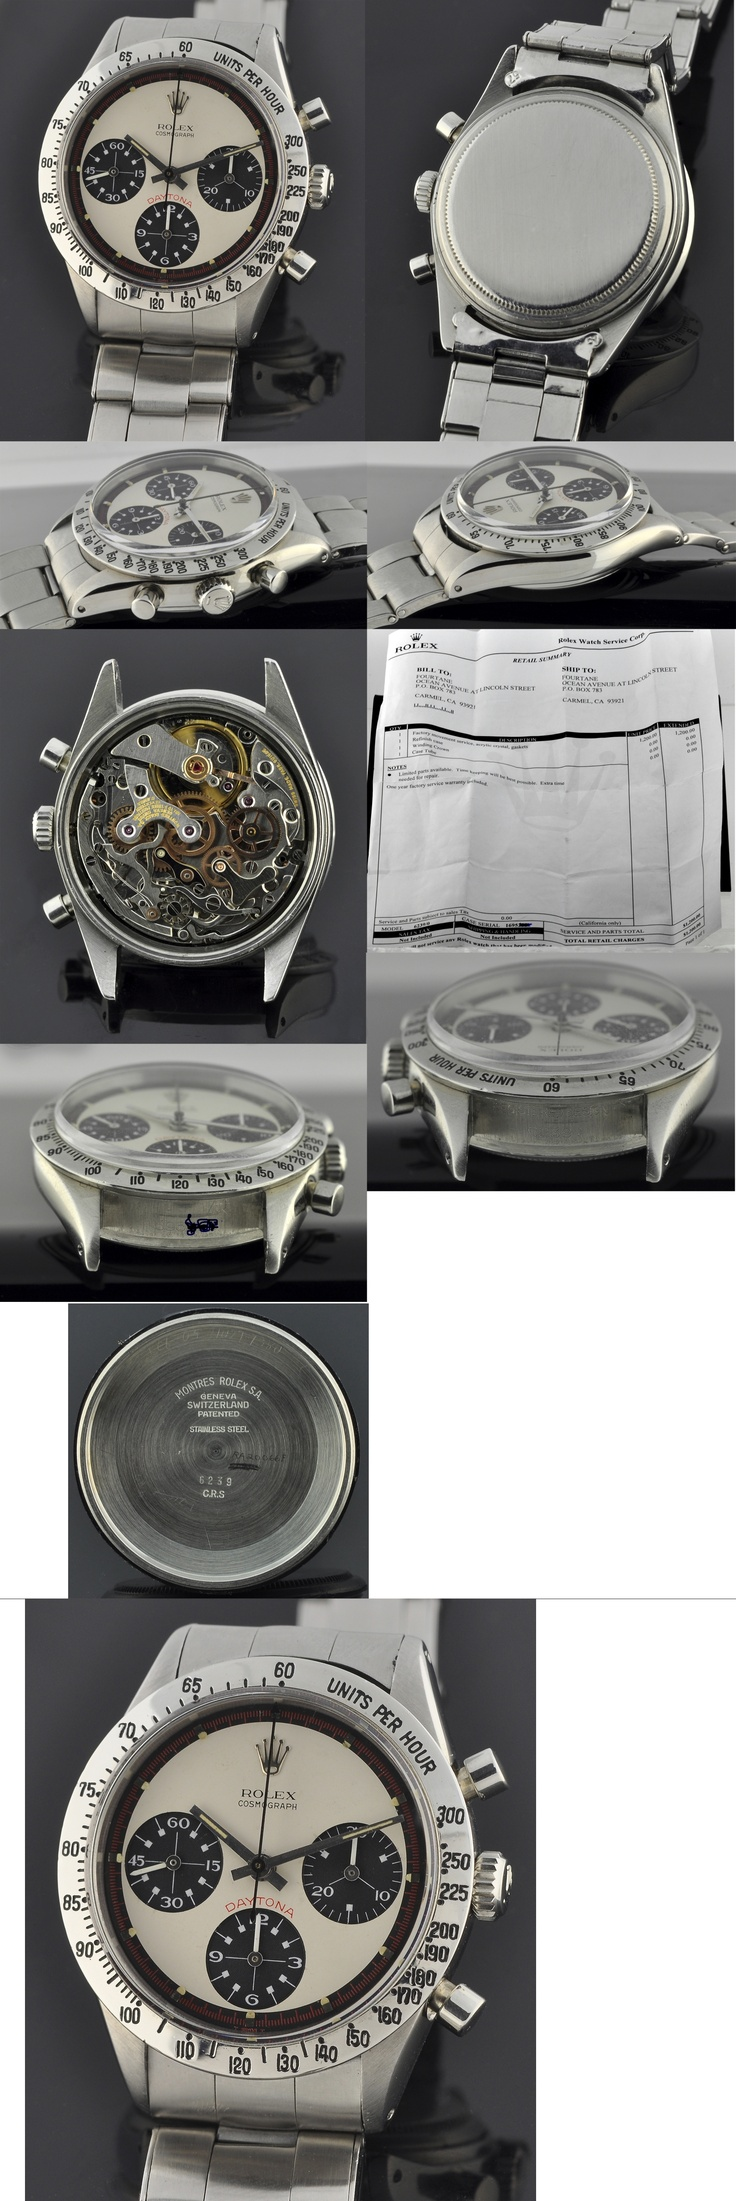 """1965 Rolex Daytona Cosmograph, with panda Paul Newman dial with white sub-registers.  There is no price given, but the statement, """"Price on Request"""", means it's a good bet that it costs more than most folks make in a year (or two, or three, or four. . . )."""